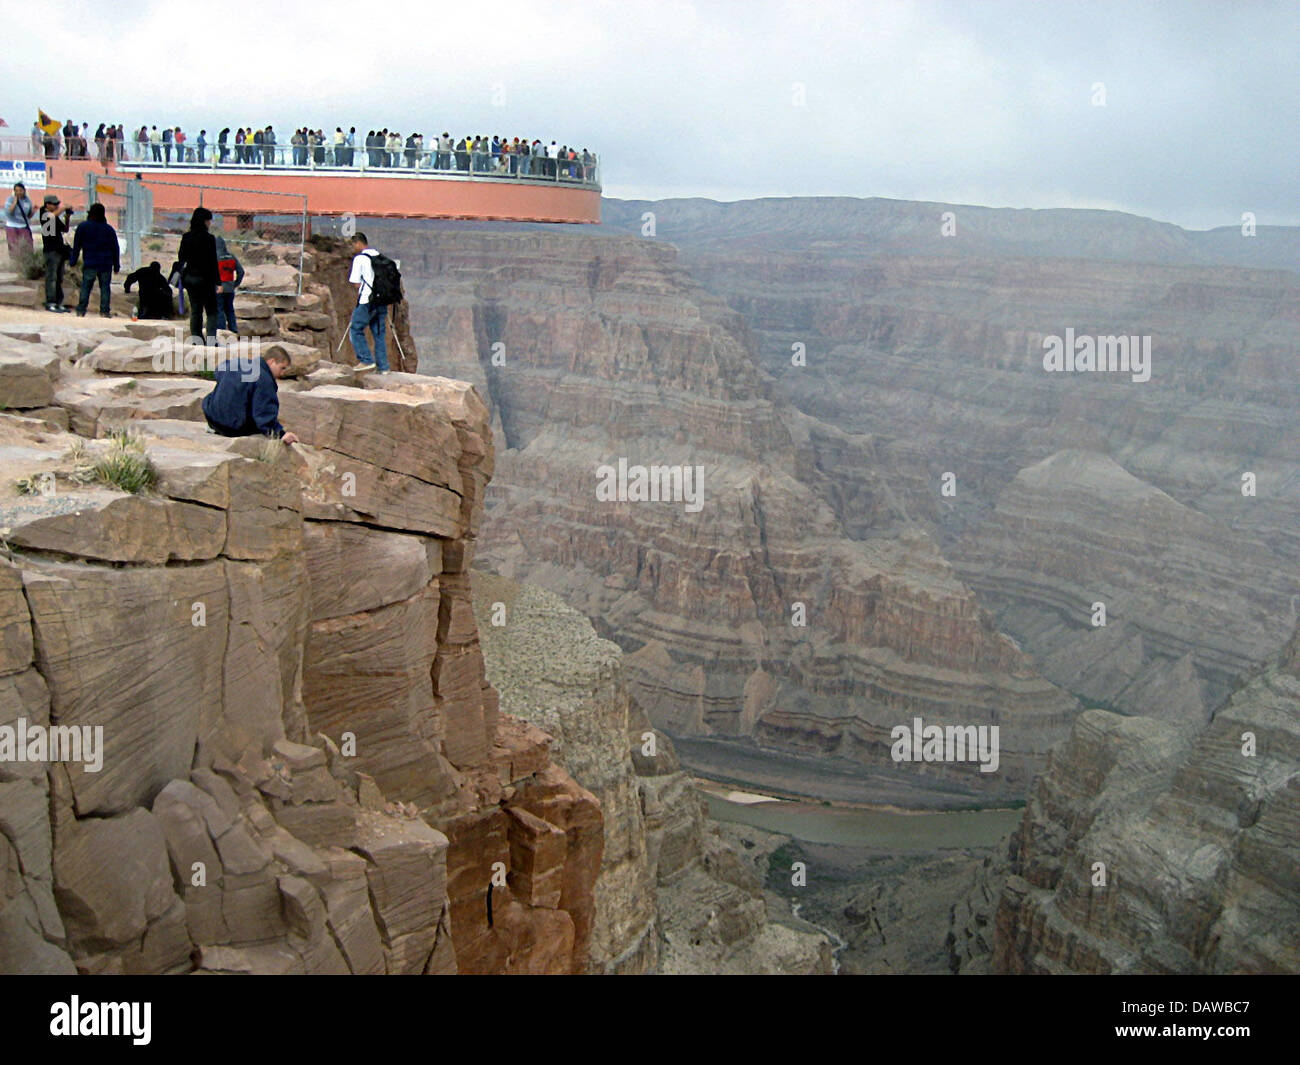 The picture shows visitors flocking to the newly opened Grand Canyon Skywalk in the Hualapai Indians reservation in Arizona state, USA, Tuesday, 20 March 2007. The Skywalk has been inaugurated with hundreds of invited guests getting fascinating views over the canyon through its glass walkway. Rising 1,220 metres from the canyon's floor and 25 metres beyond its rim, the Skywalk is b Stock Photo